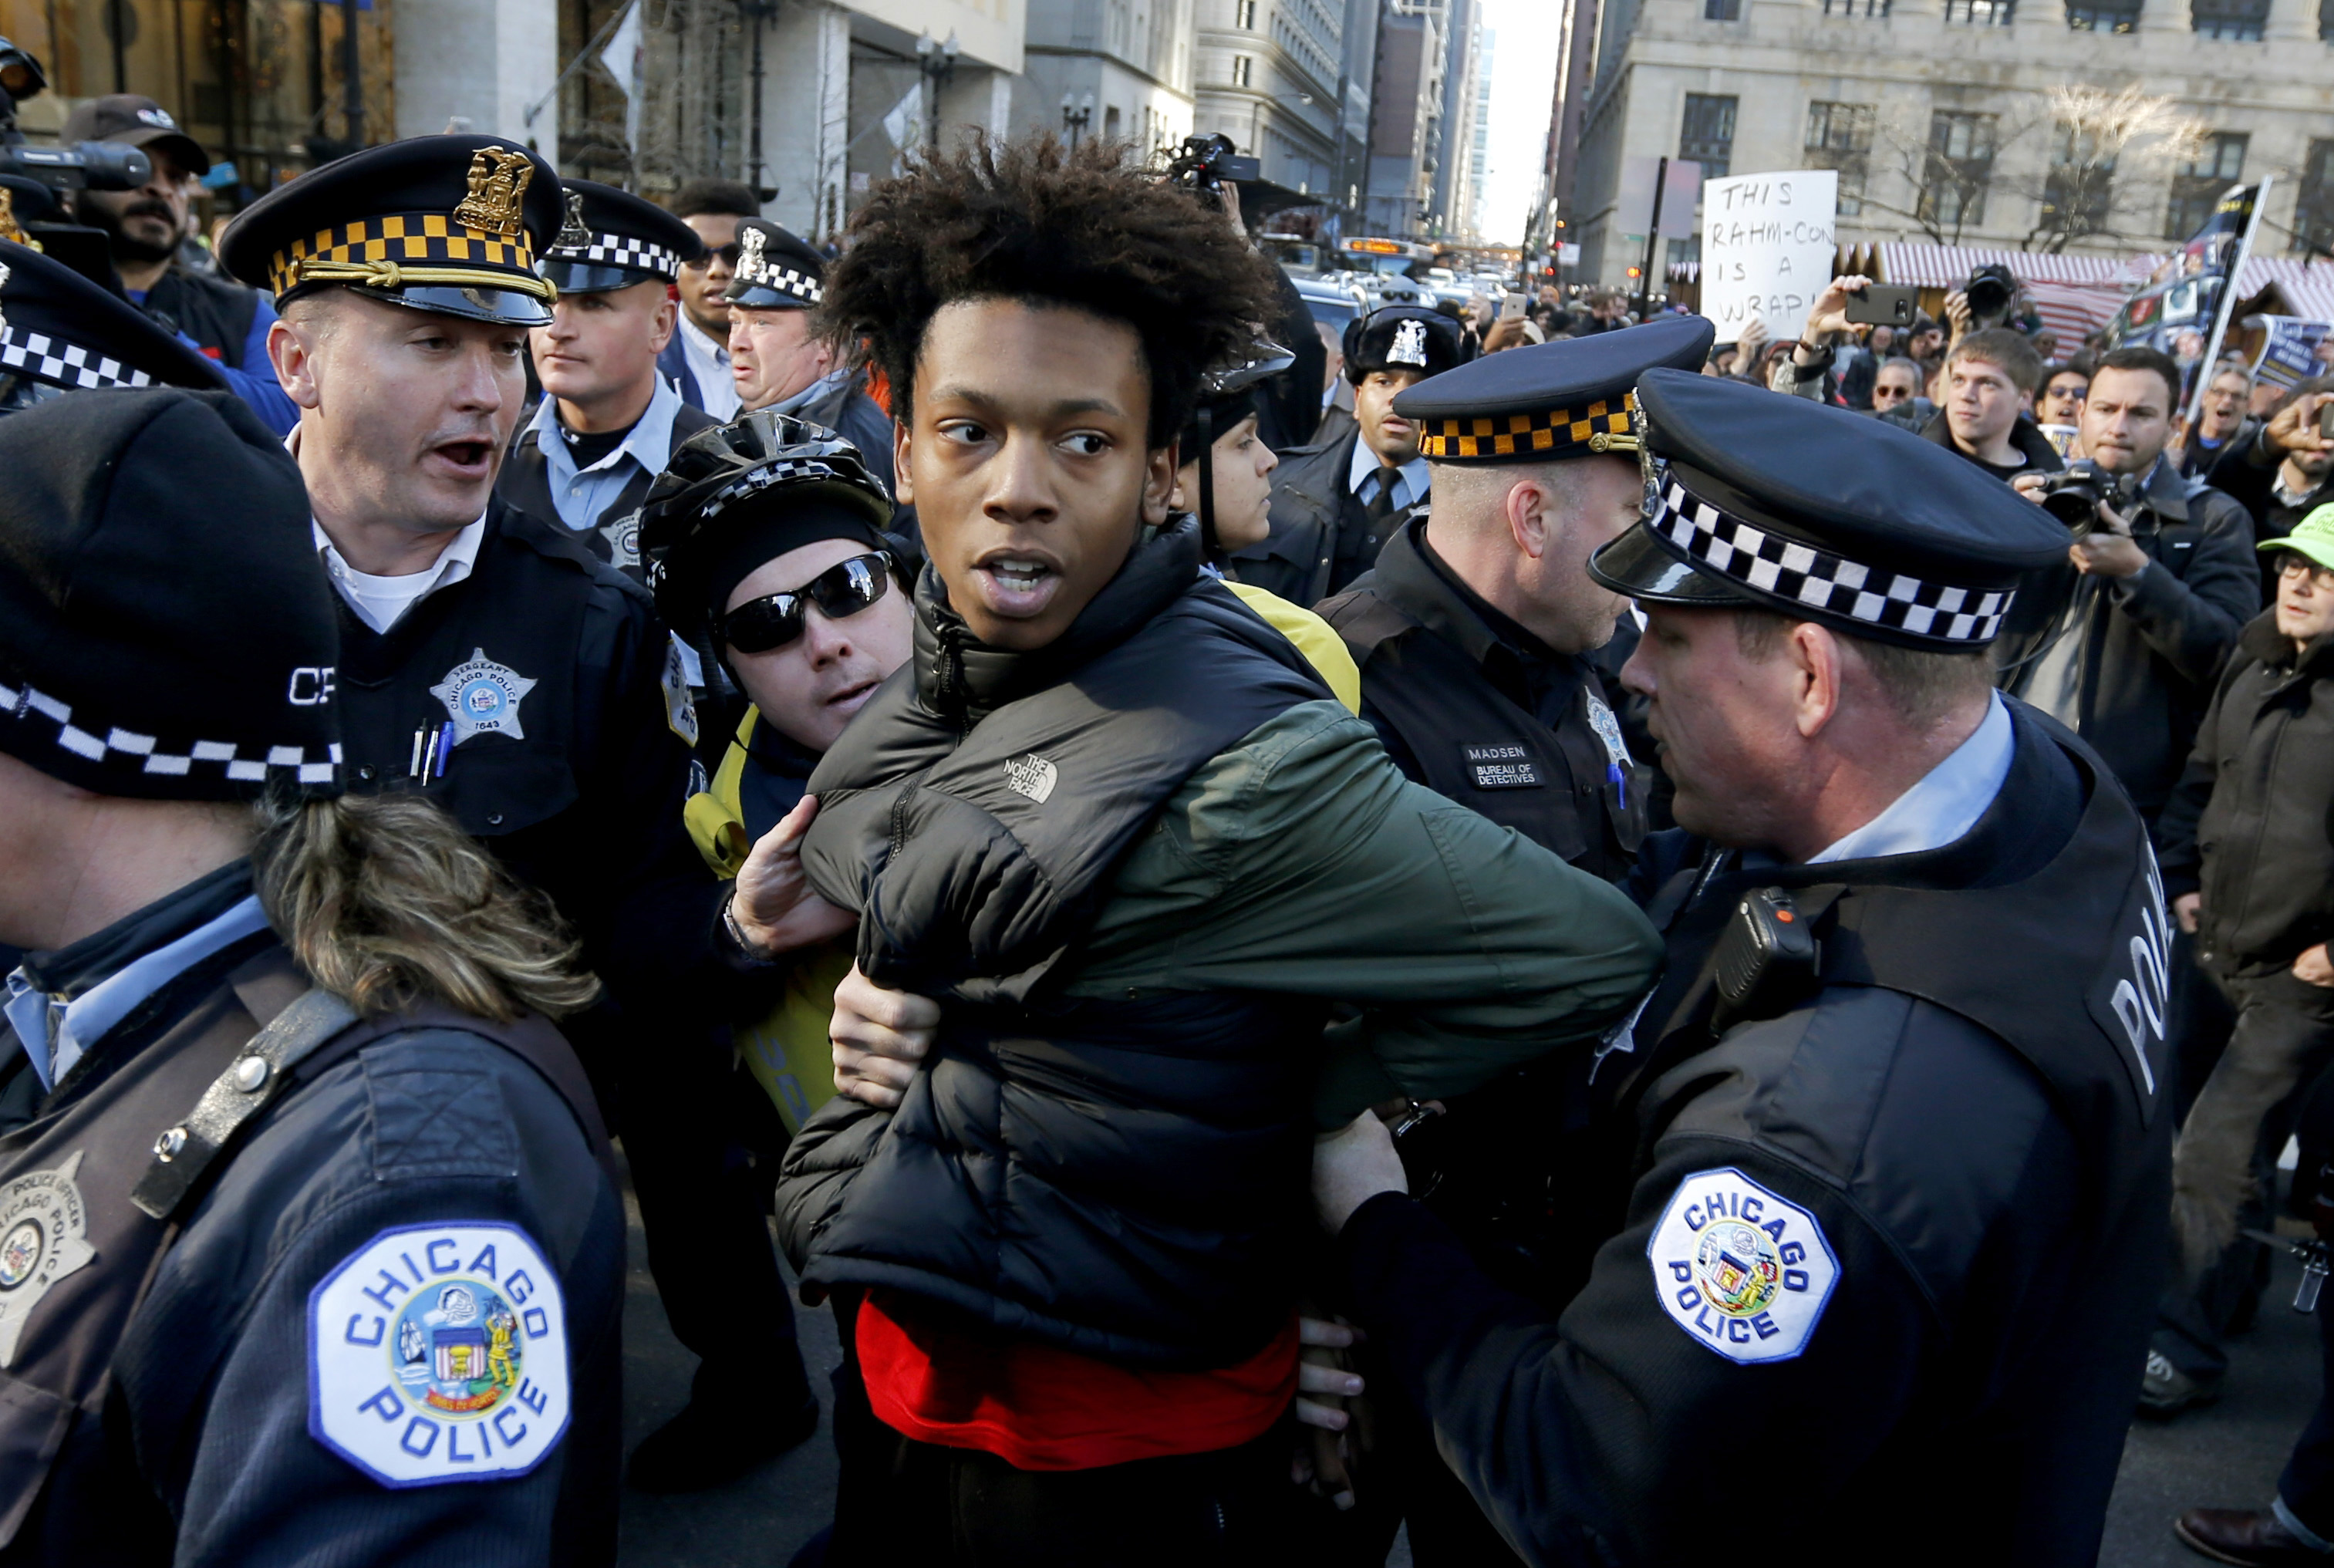 Lamon Reccord is taken into custody by Chicago police officers during a march calling for Chicago Mayor Rahm Emanuel and Cook County State's Attorney Anita Alvarez to resign, Dec. 9, 2015.